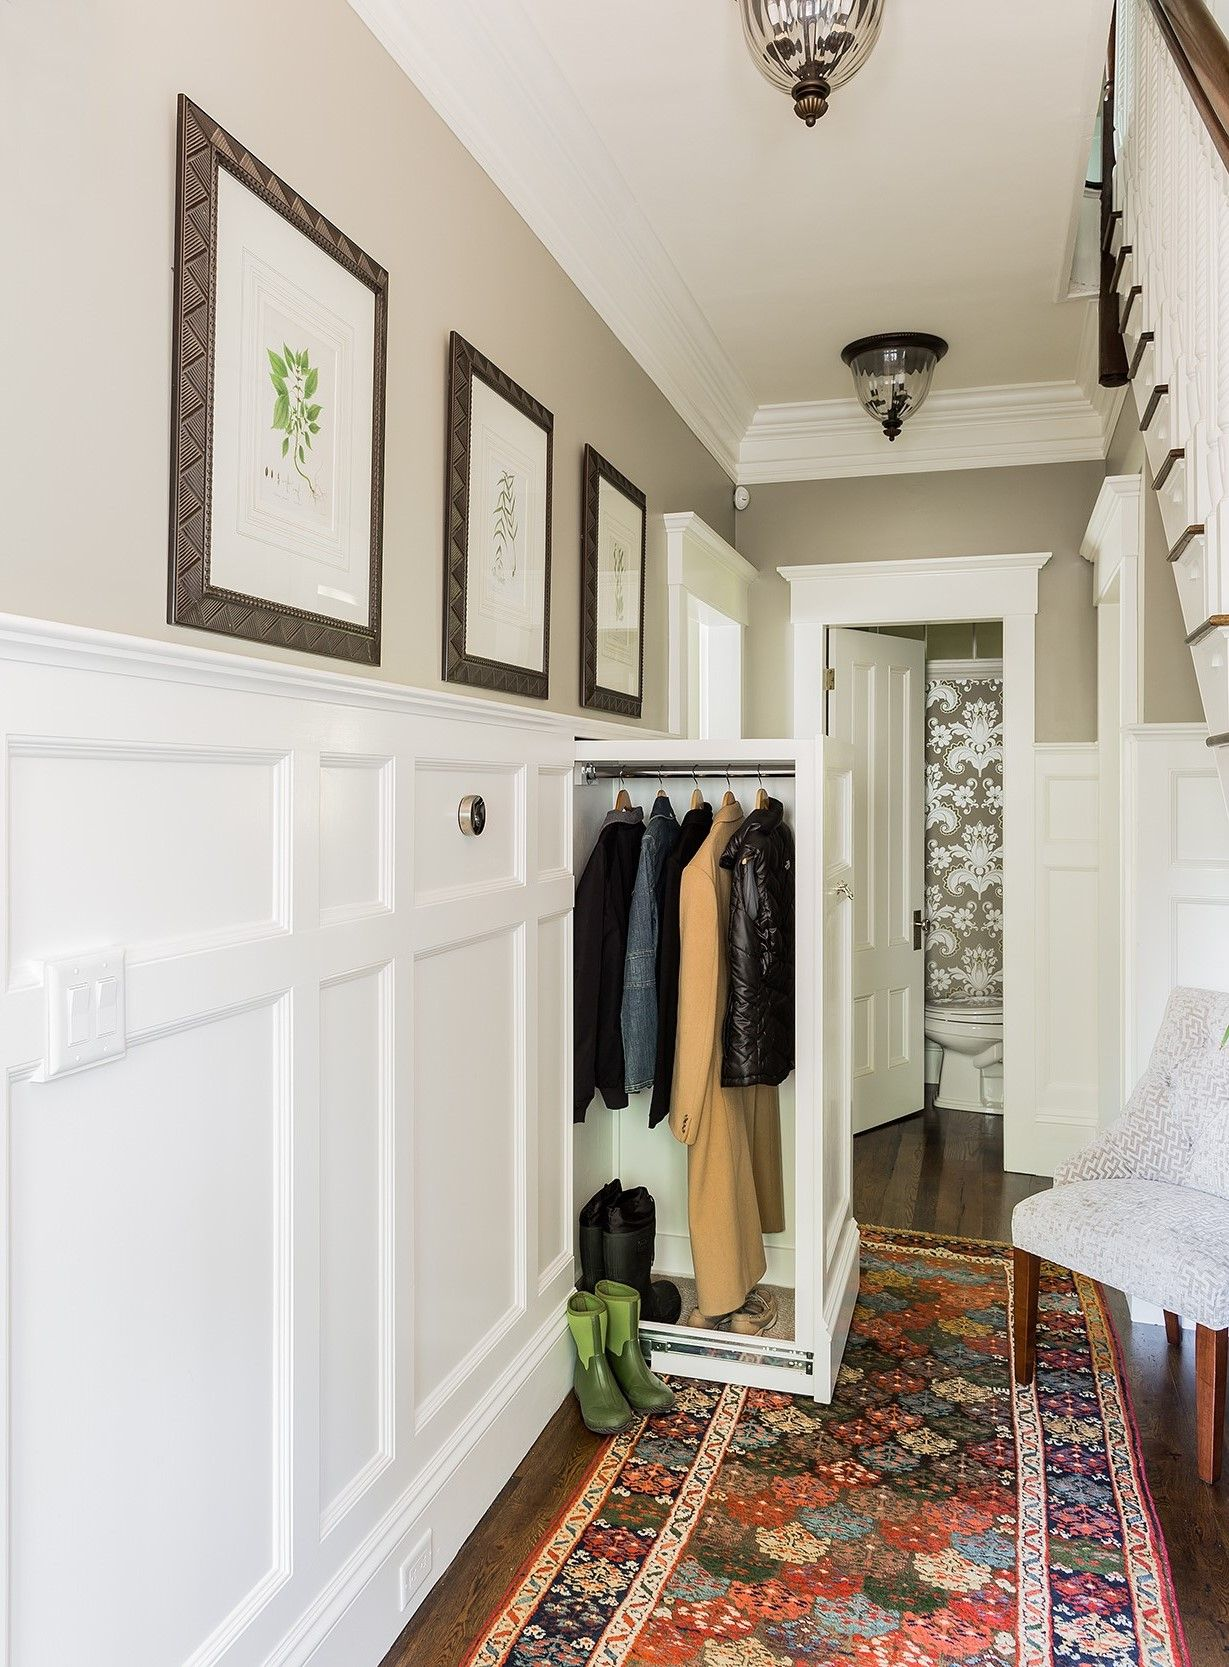 Charmant A Hidden Slide Out Coat Closet Built Into The Wall Takes Advantage Of An  Unused Chase Next To The Fireplace.